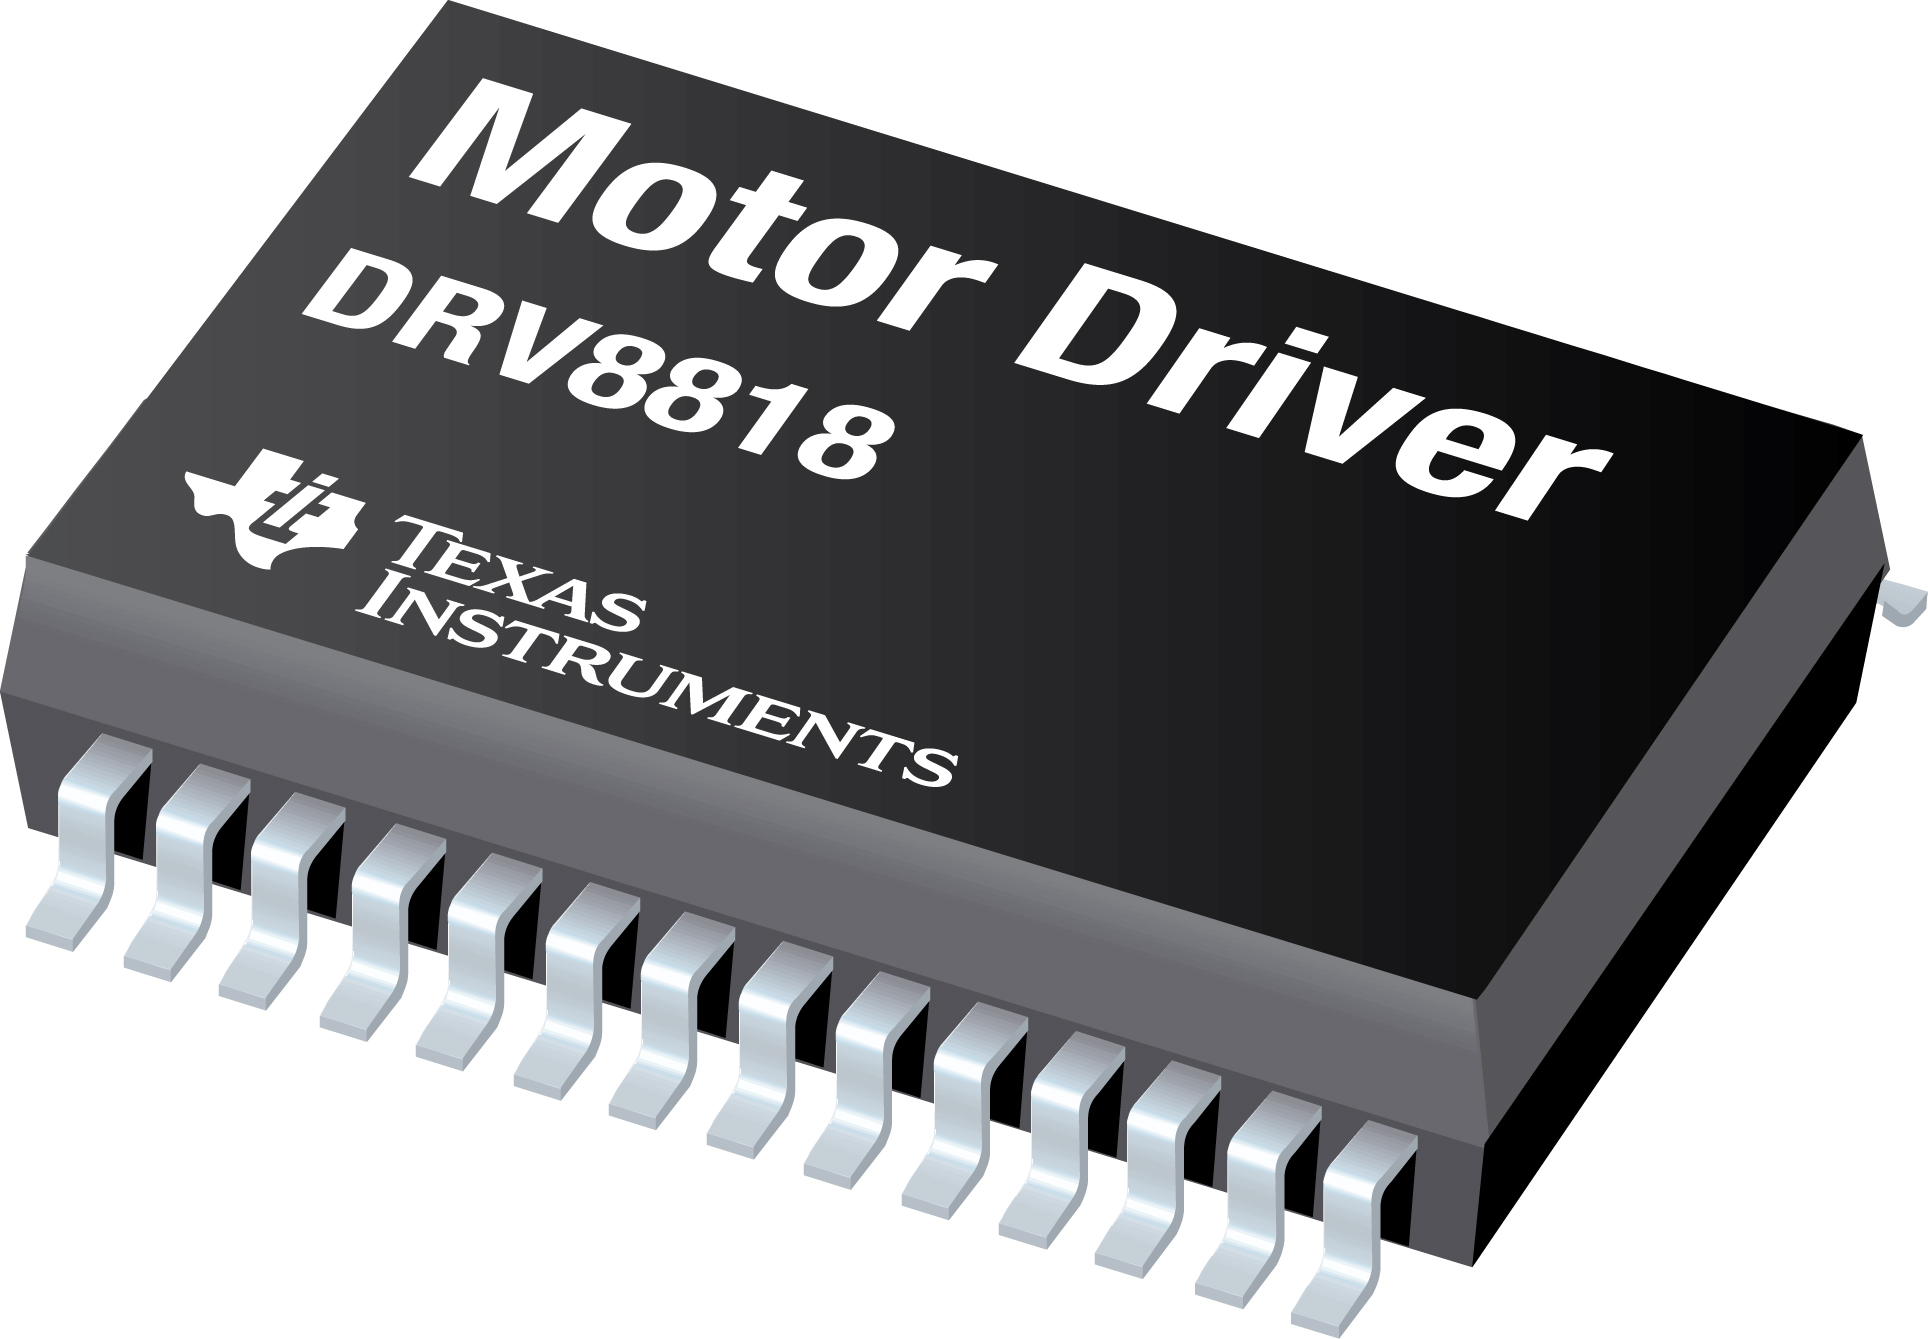 Power Systems Design Psd Information To Your Designs Ph Circuit Atlas Scientific Arduino Sensors Box Electronica Shop Tis Stepper Motor Driver Reduces Board Space While Improving Thermal Performance System Reliability And Efficiency